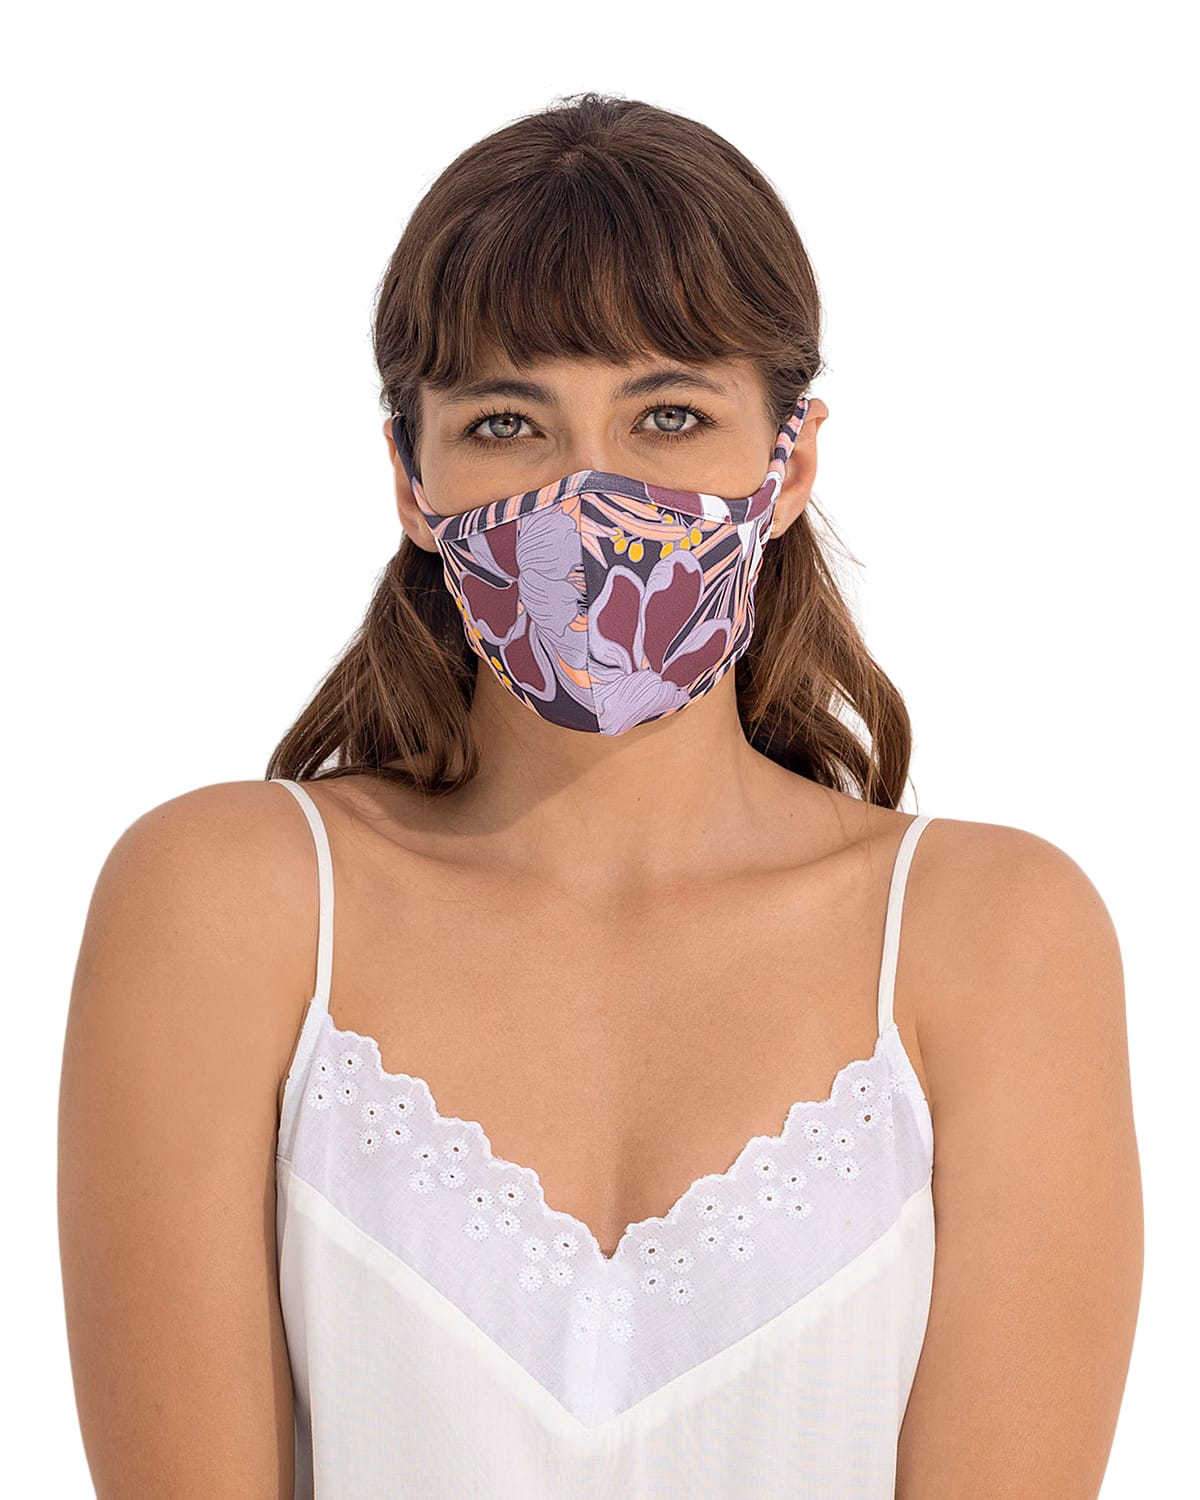 Airtight, Triple-Layered Face Mask with Anti-Fluid Technology - Unisex